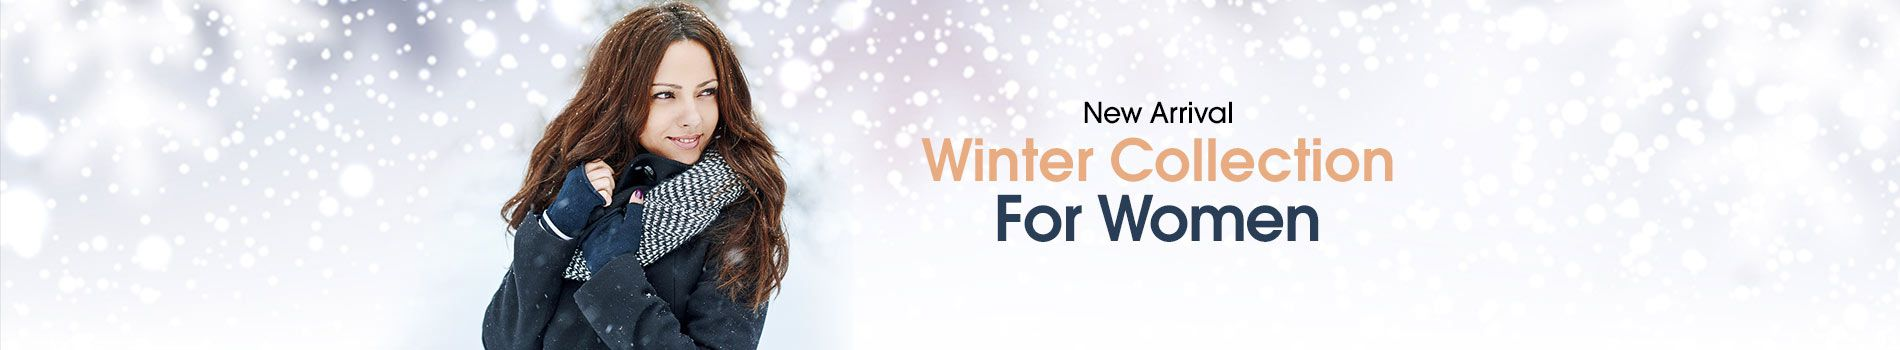 Winter Collection for Women